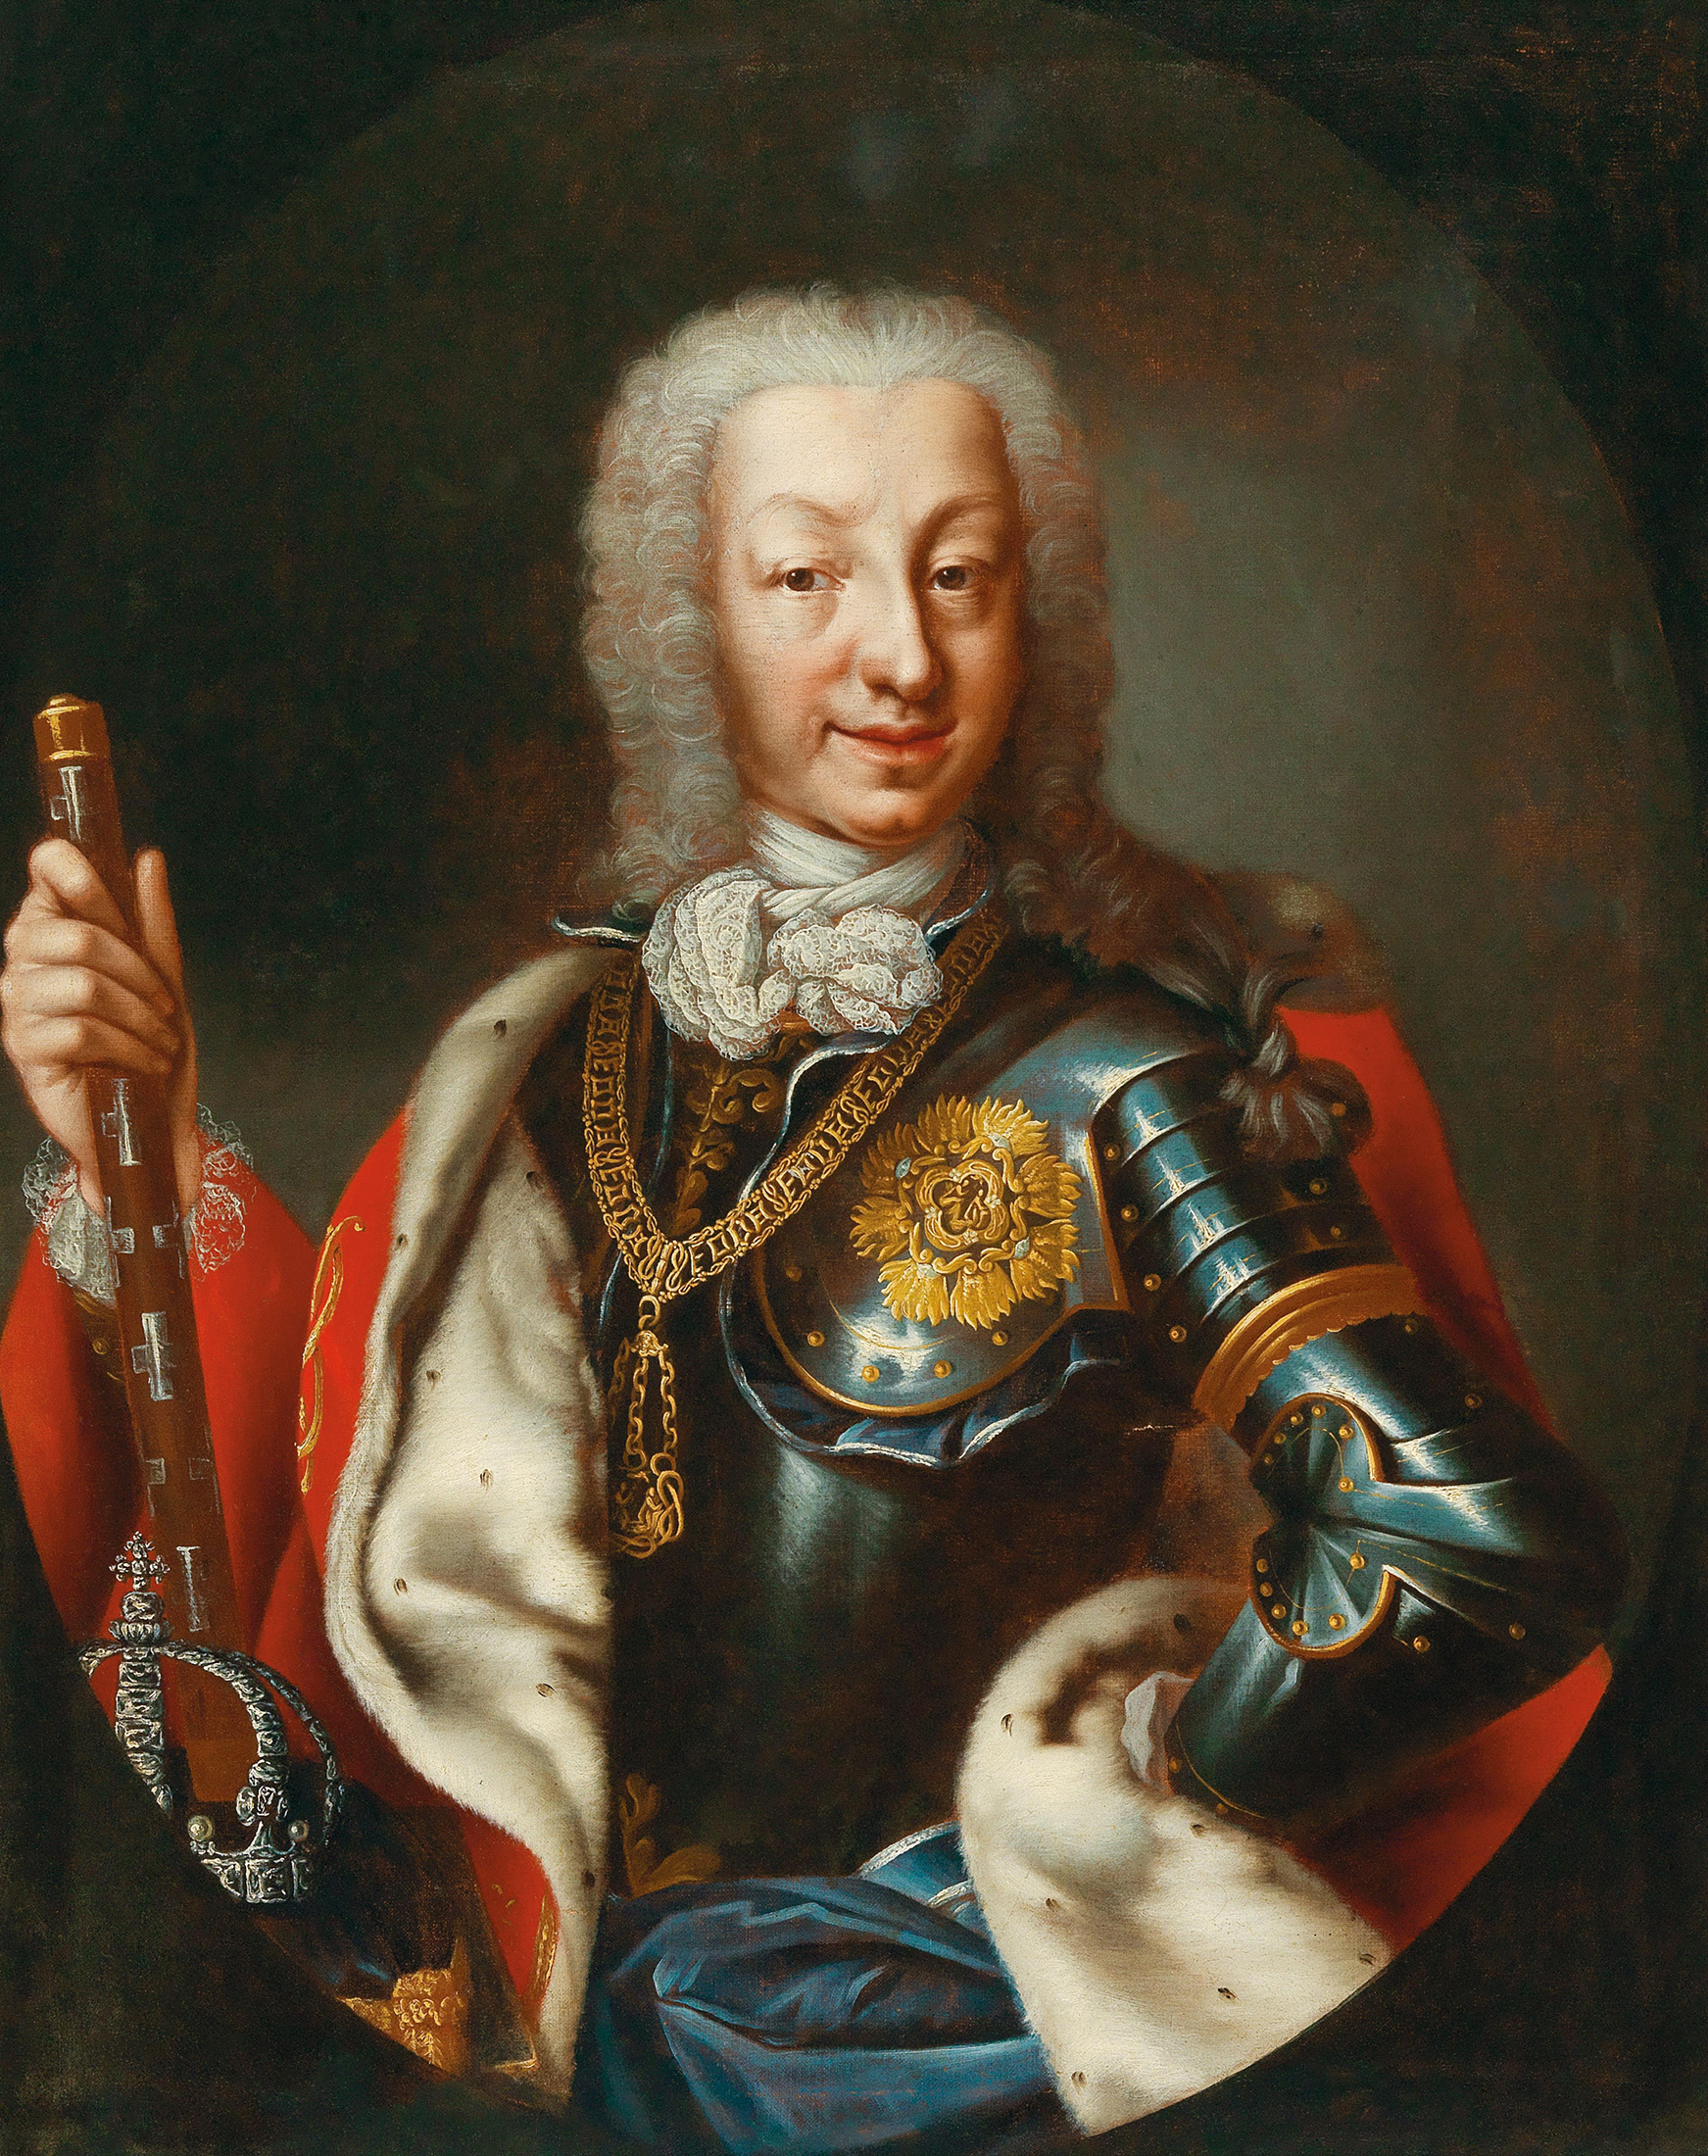 Portrait of Charles Emmanuel III (1701-1773), King of Sardinia and Duke of Savoy (1730-1773) | Portraits of Kings